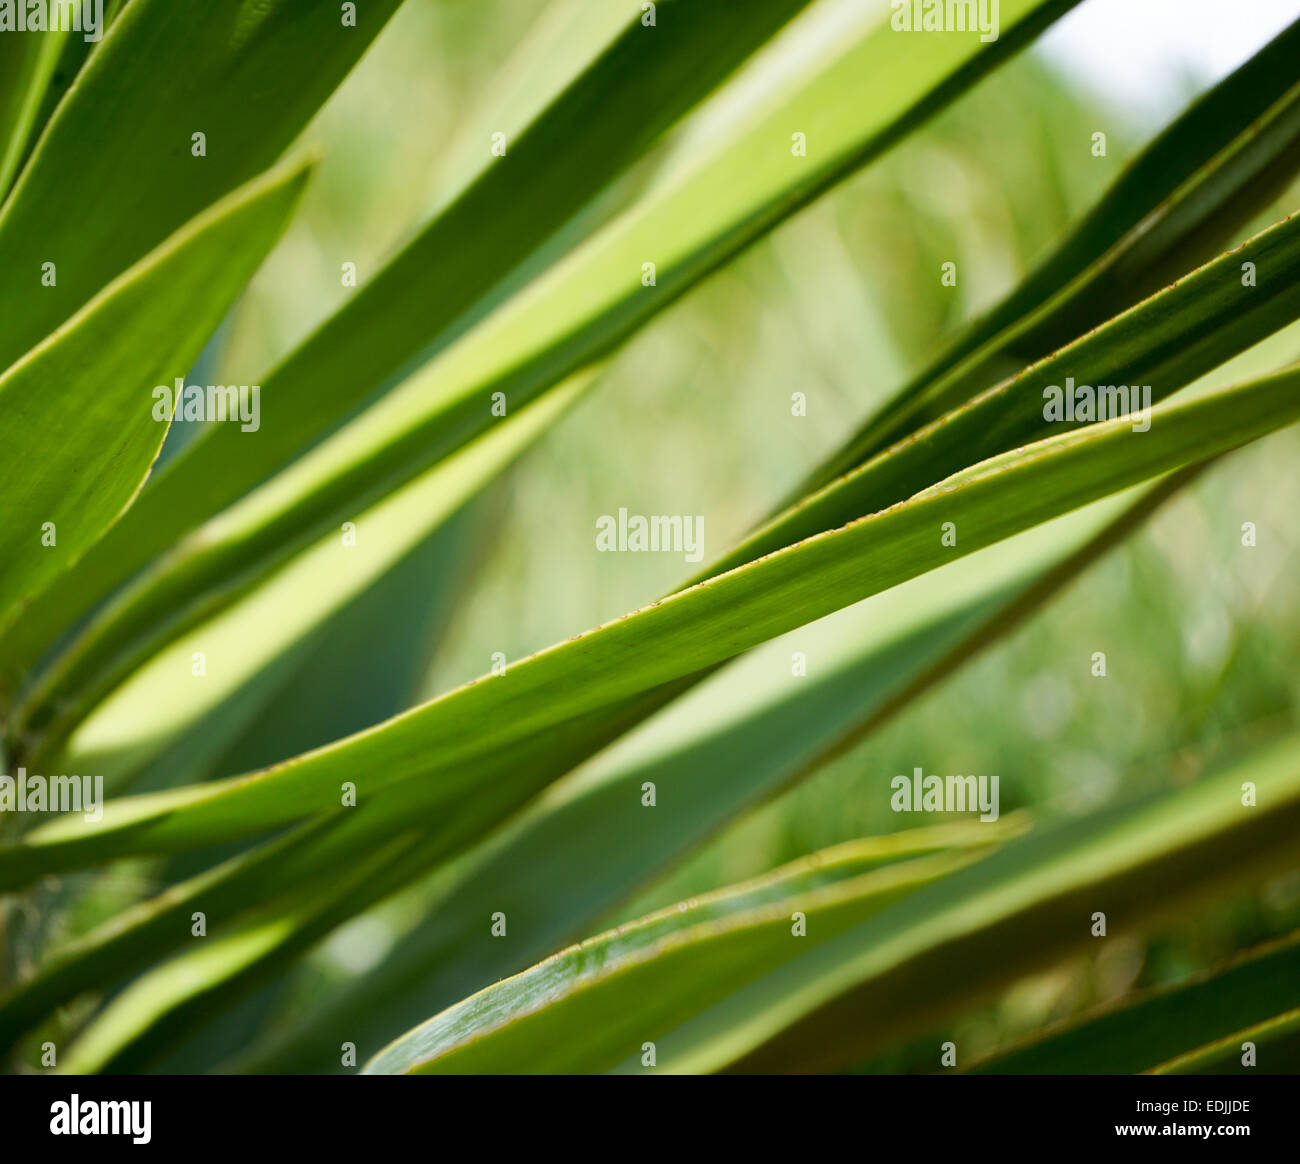 Green plant in sustainable garden. - Stock Image